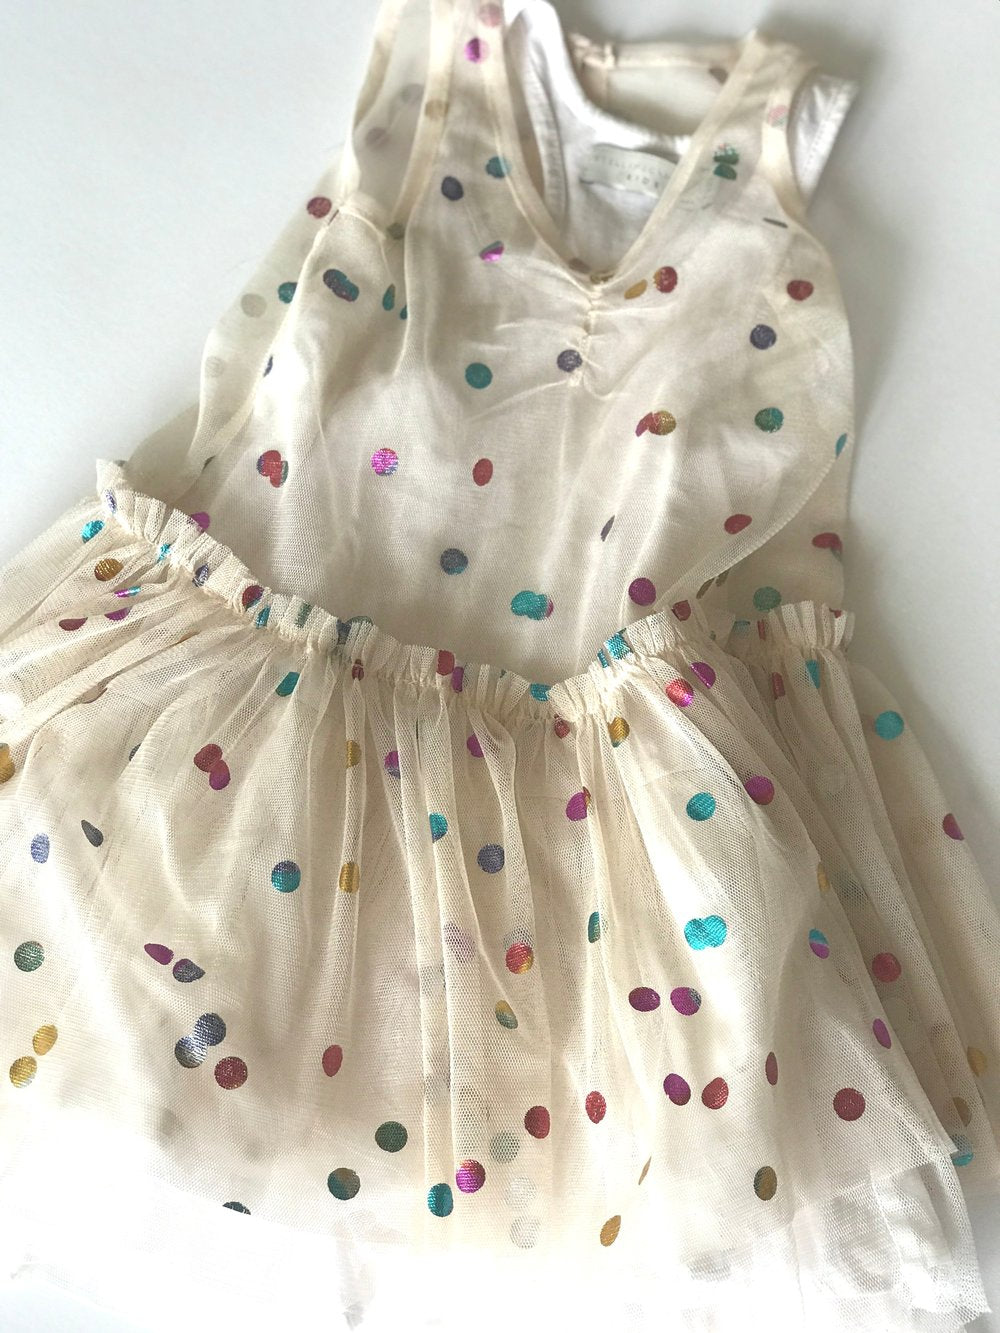 Stella McCartney Tulle Confetti Dress